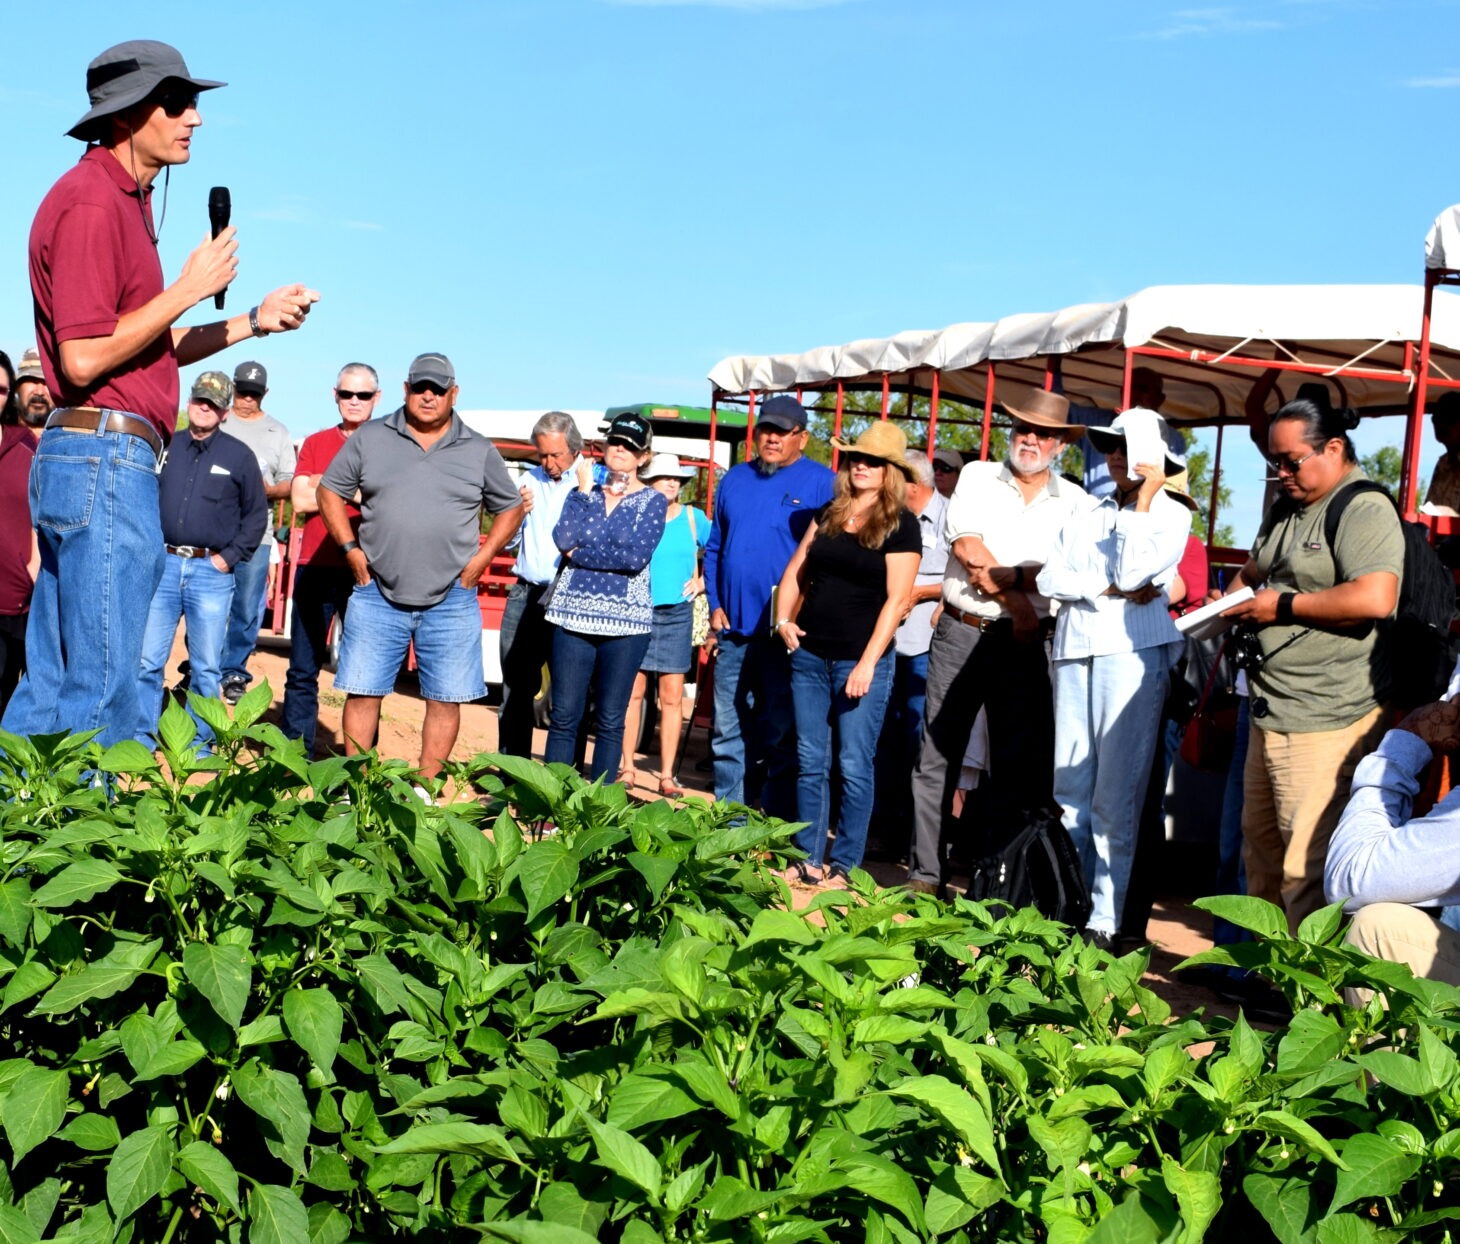 During a 2019 field day, Brian Schutte, New Mexico State University associate professor in weed science, talks to visitors about research he is conducting at NMSU's Agricultural Science Center at Los Lunas. With 12 agricultural science centers across New Mexico, NMSU is able to conduct relevant research for the state's diverse environmental conditions. | NMSU photo by Jane Moorman